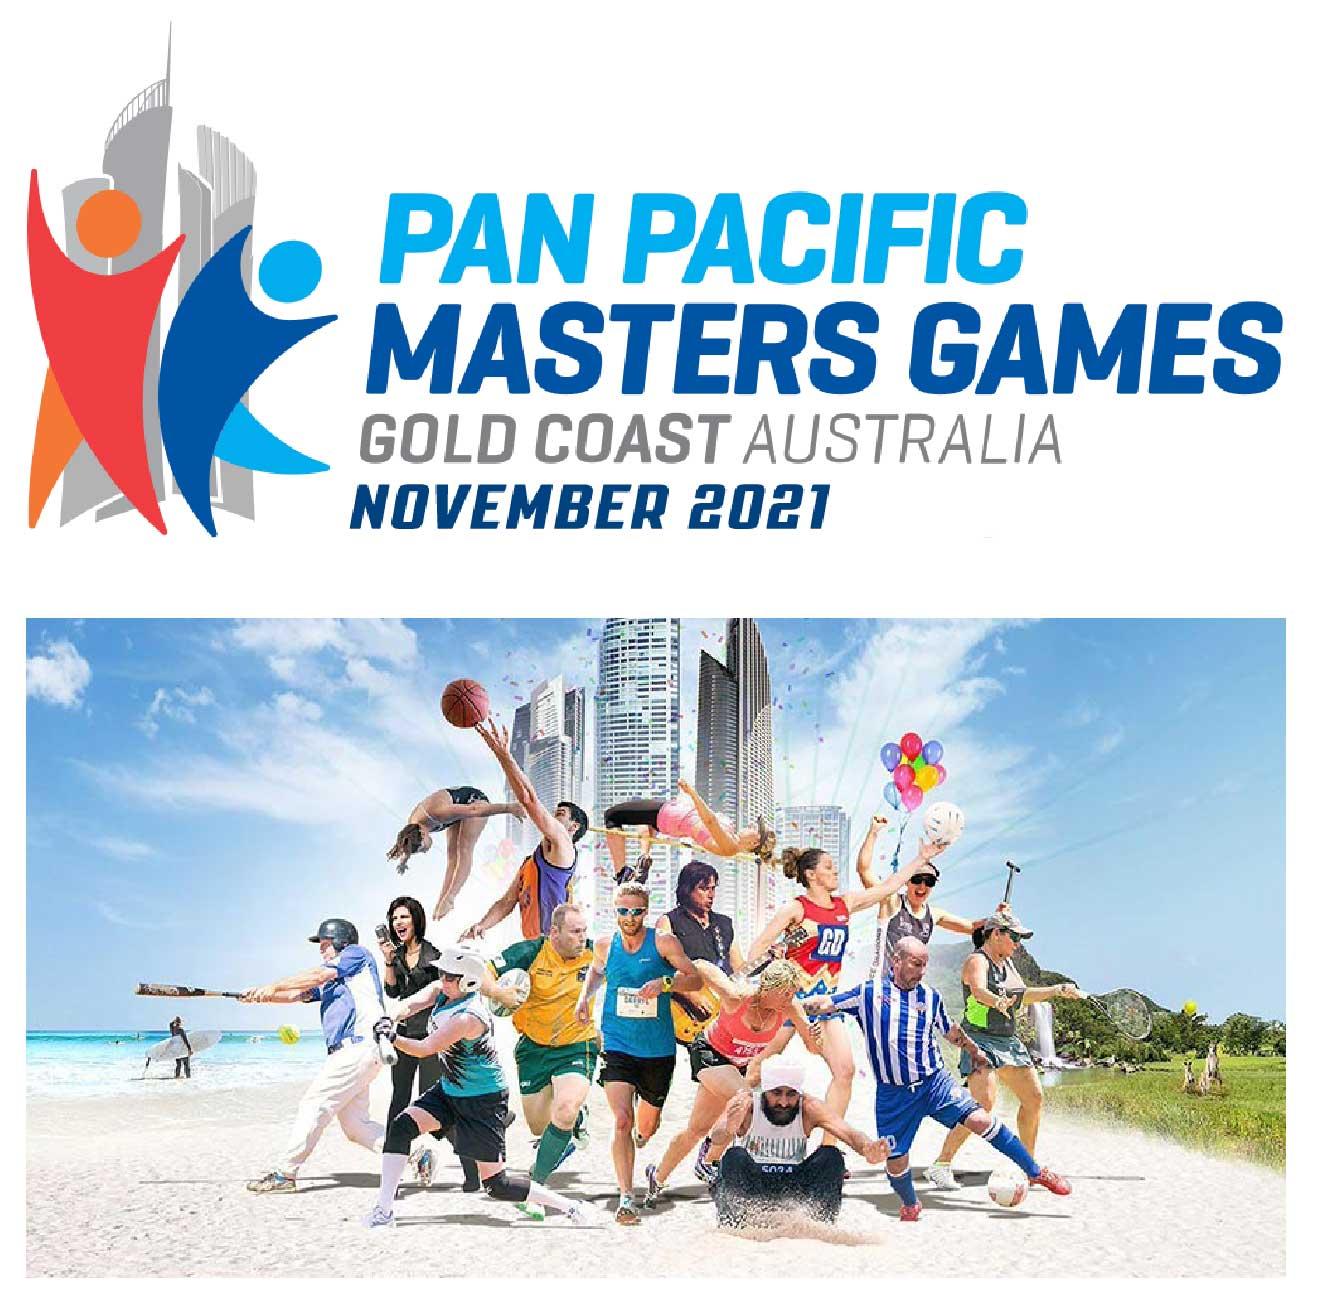 Pan Pacific Masters Games 2021